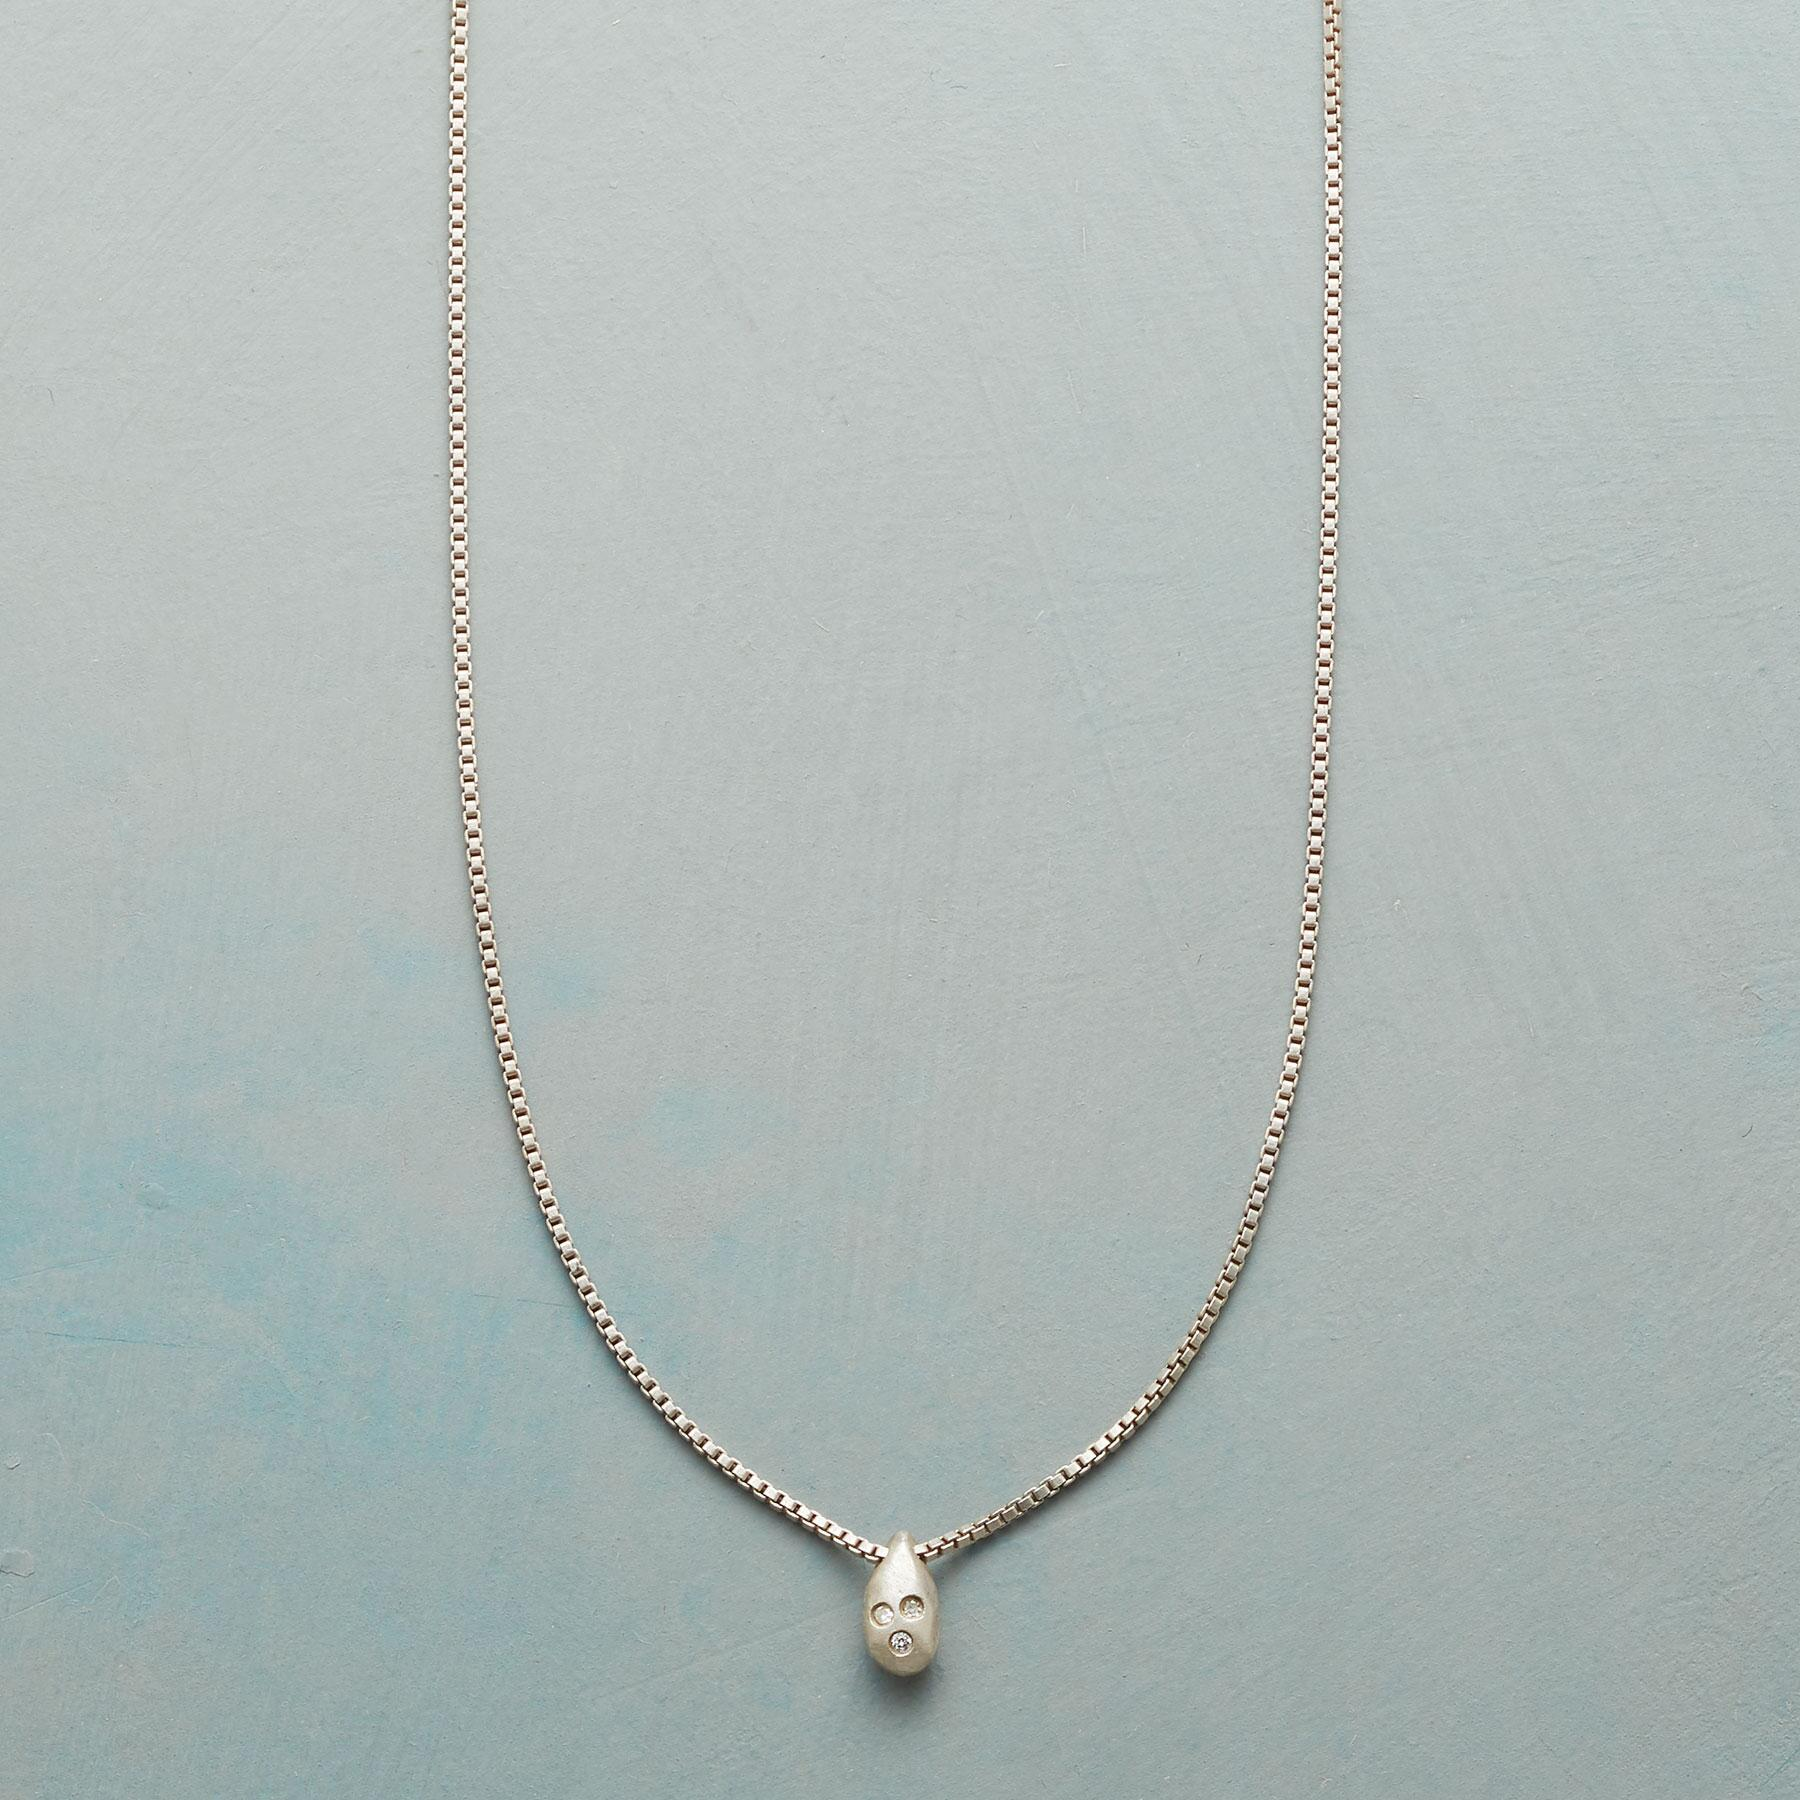 DIAMOND DROPLET NECKLACE: View 1